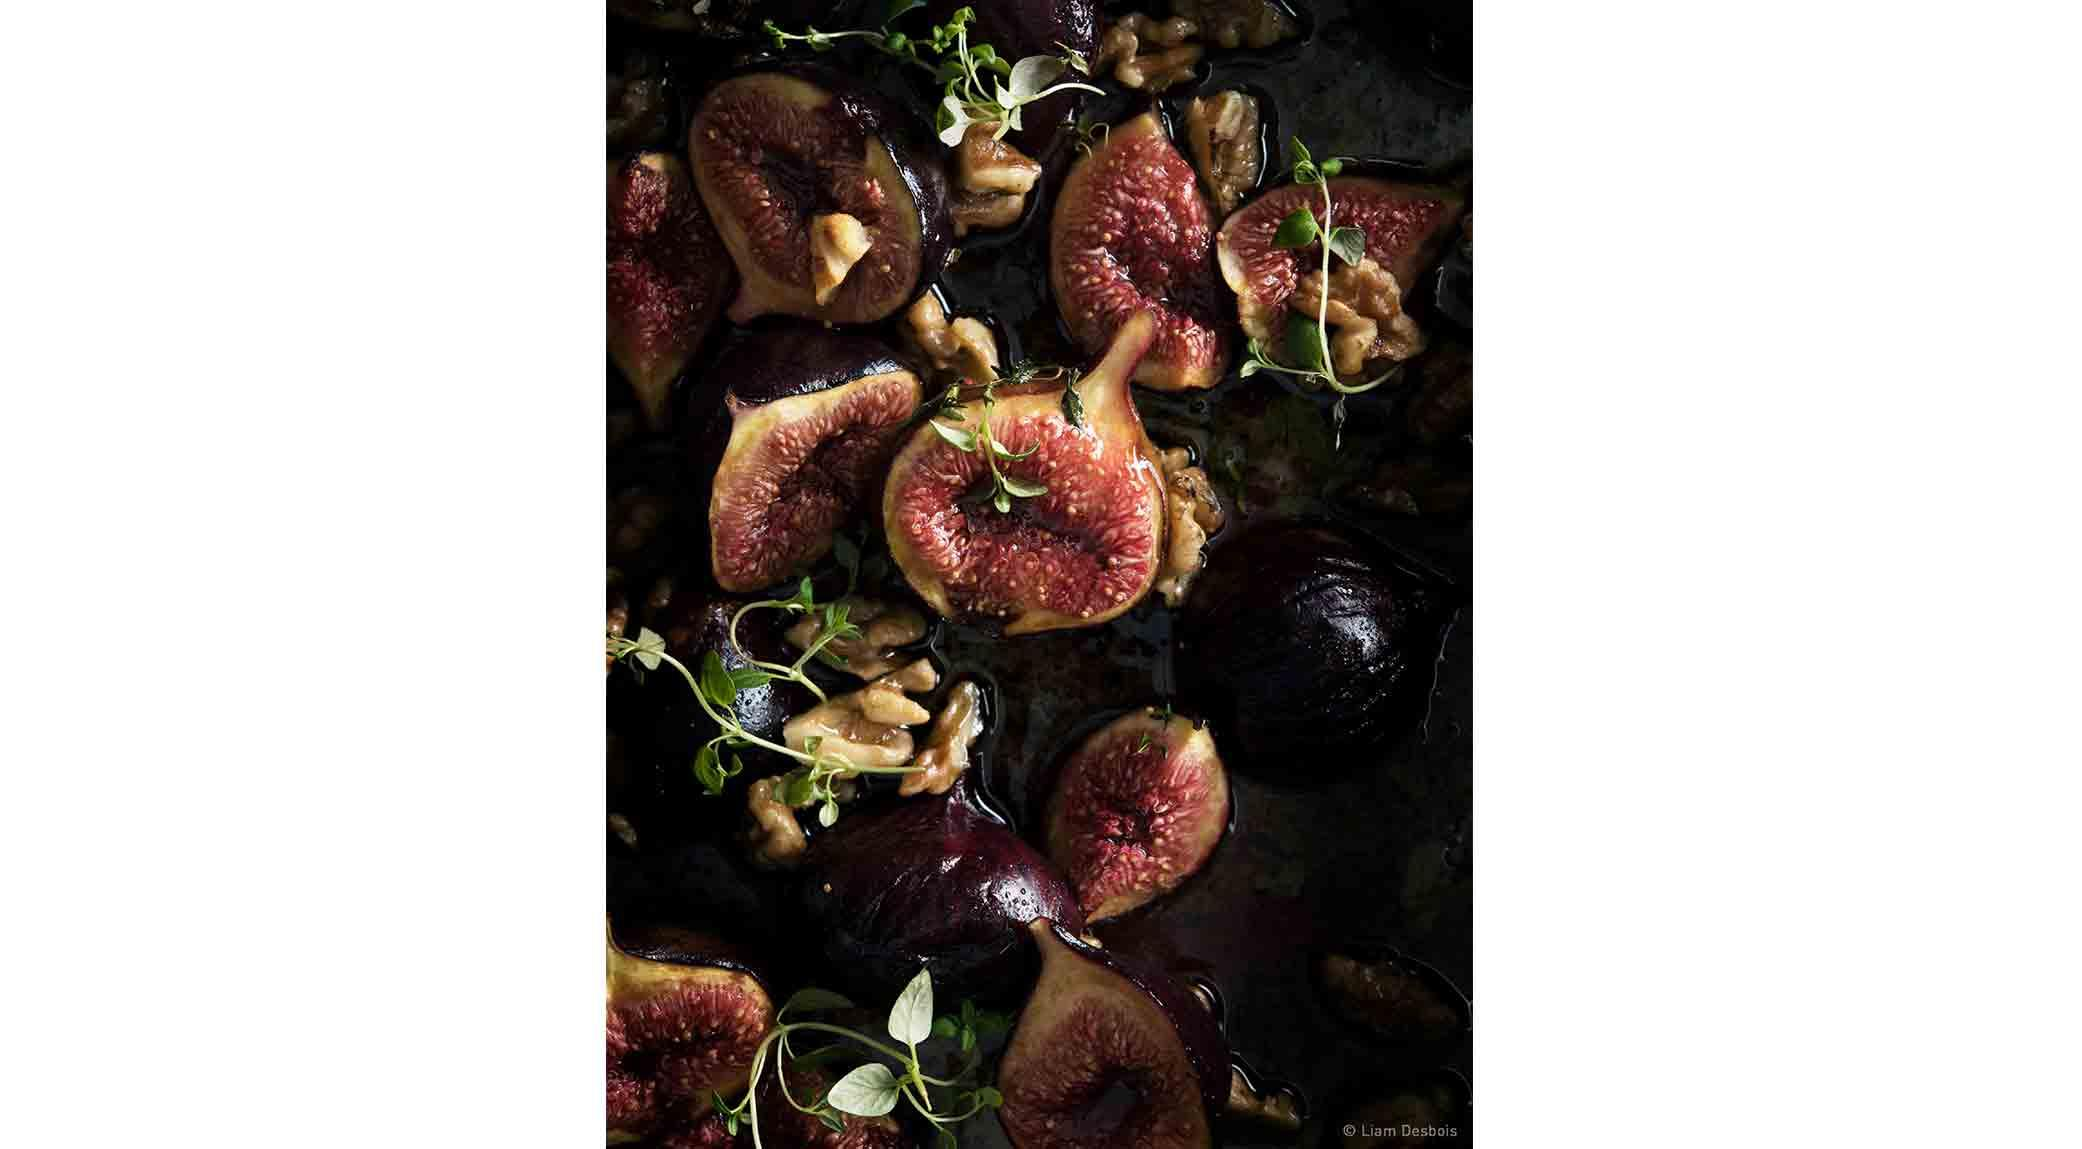 Baked Figs by Liam Desbois